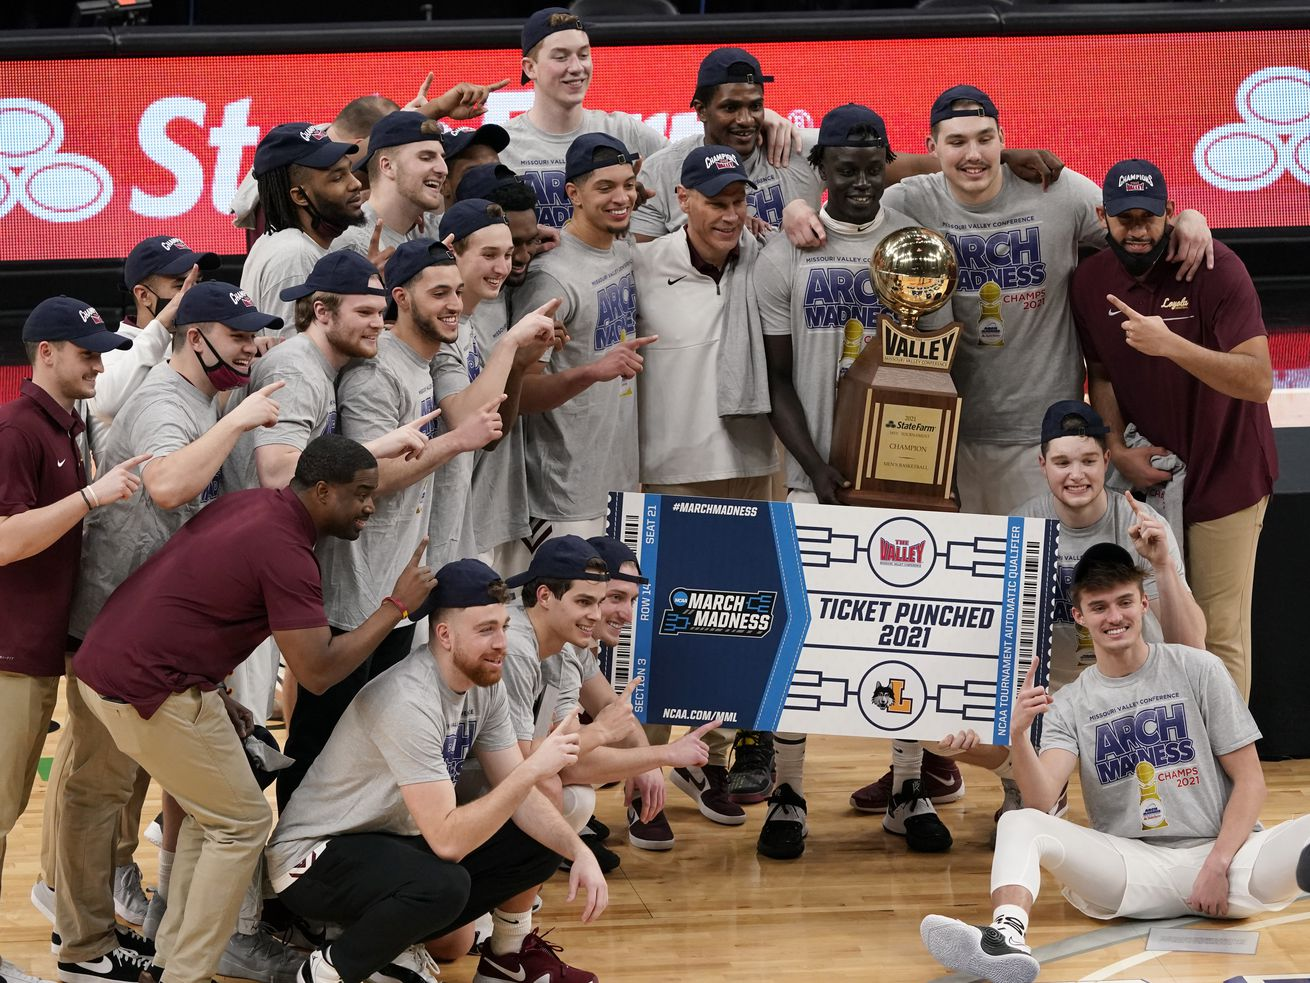 Loyola players and coaches celebrate after winning the Missouri Valley Conference championship.